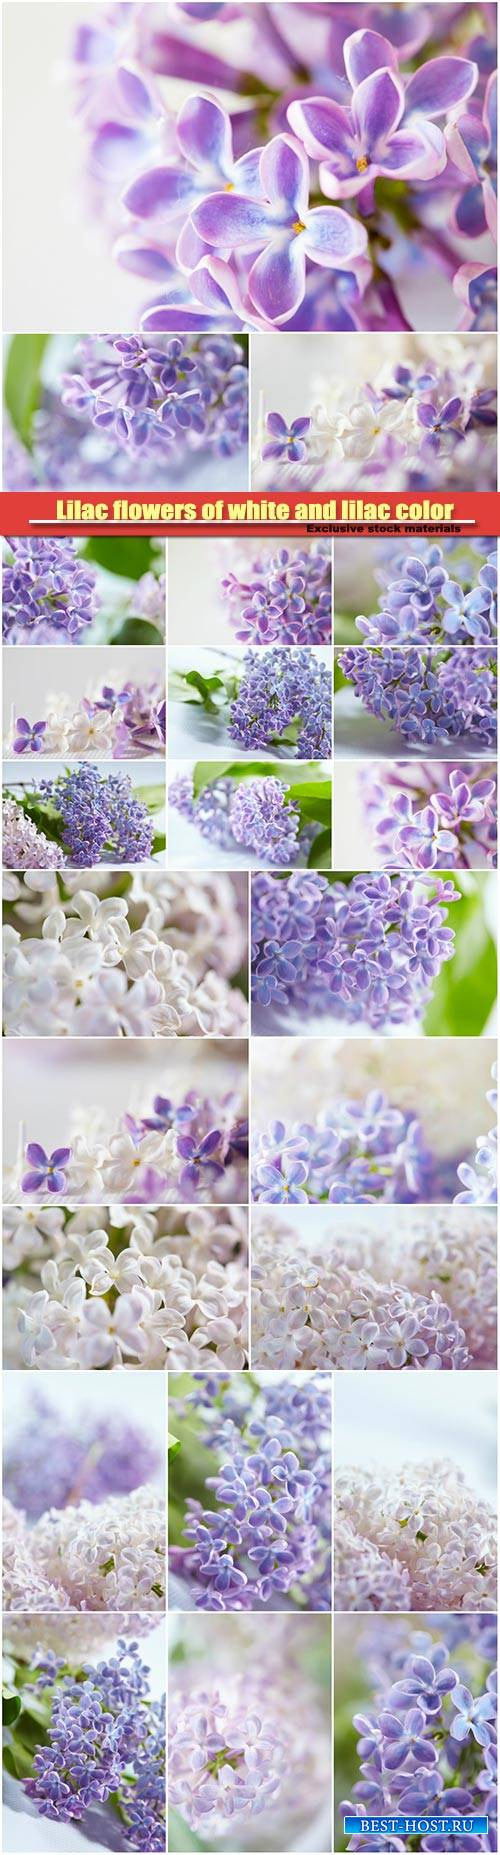 Lilac flowers of white and lilac color